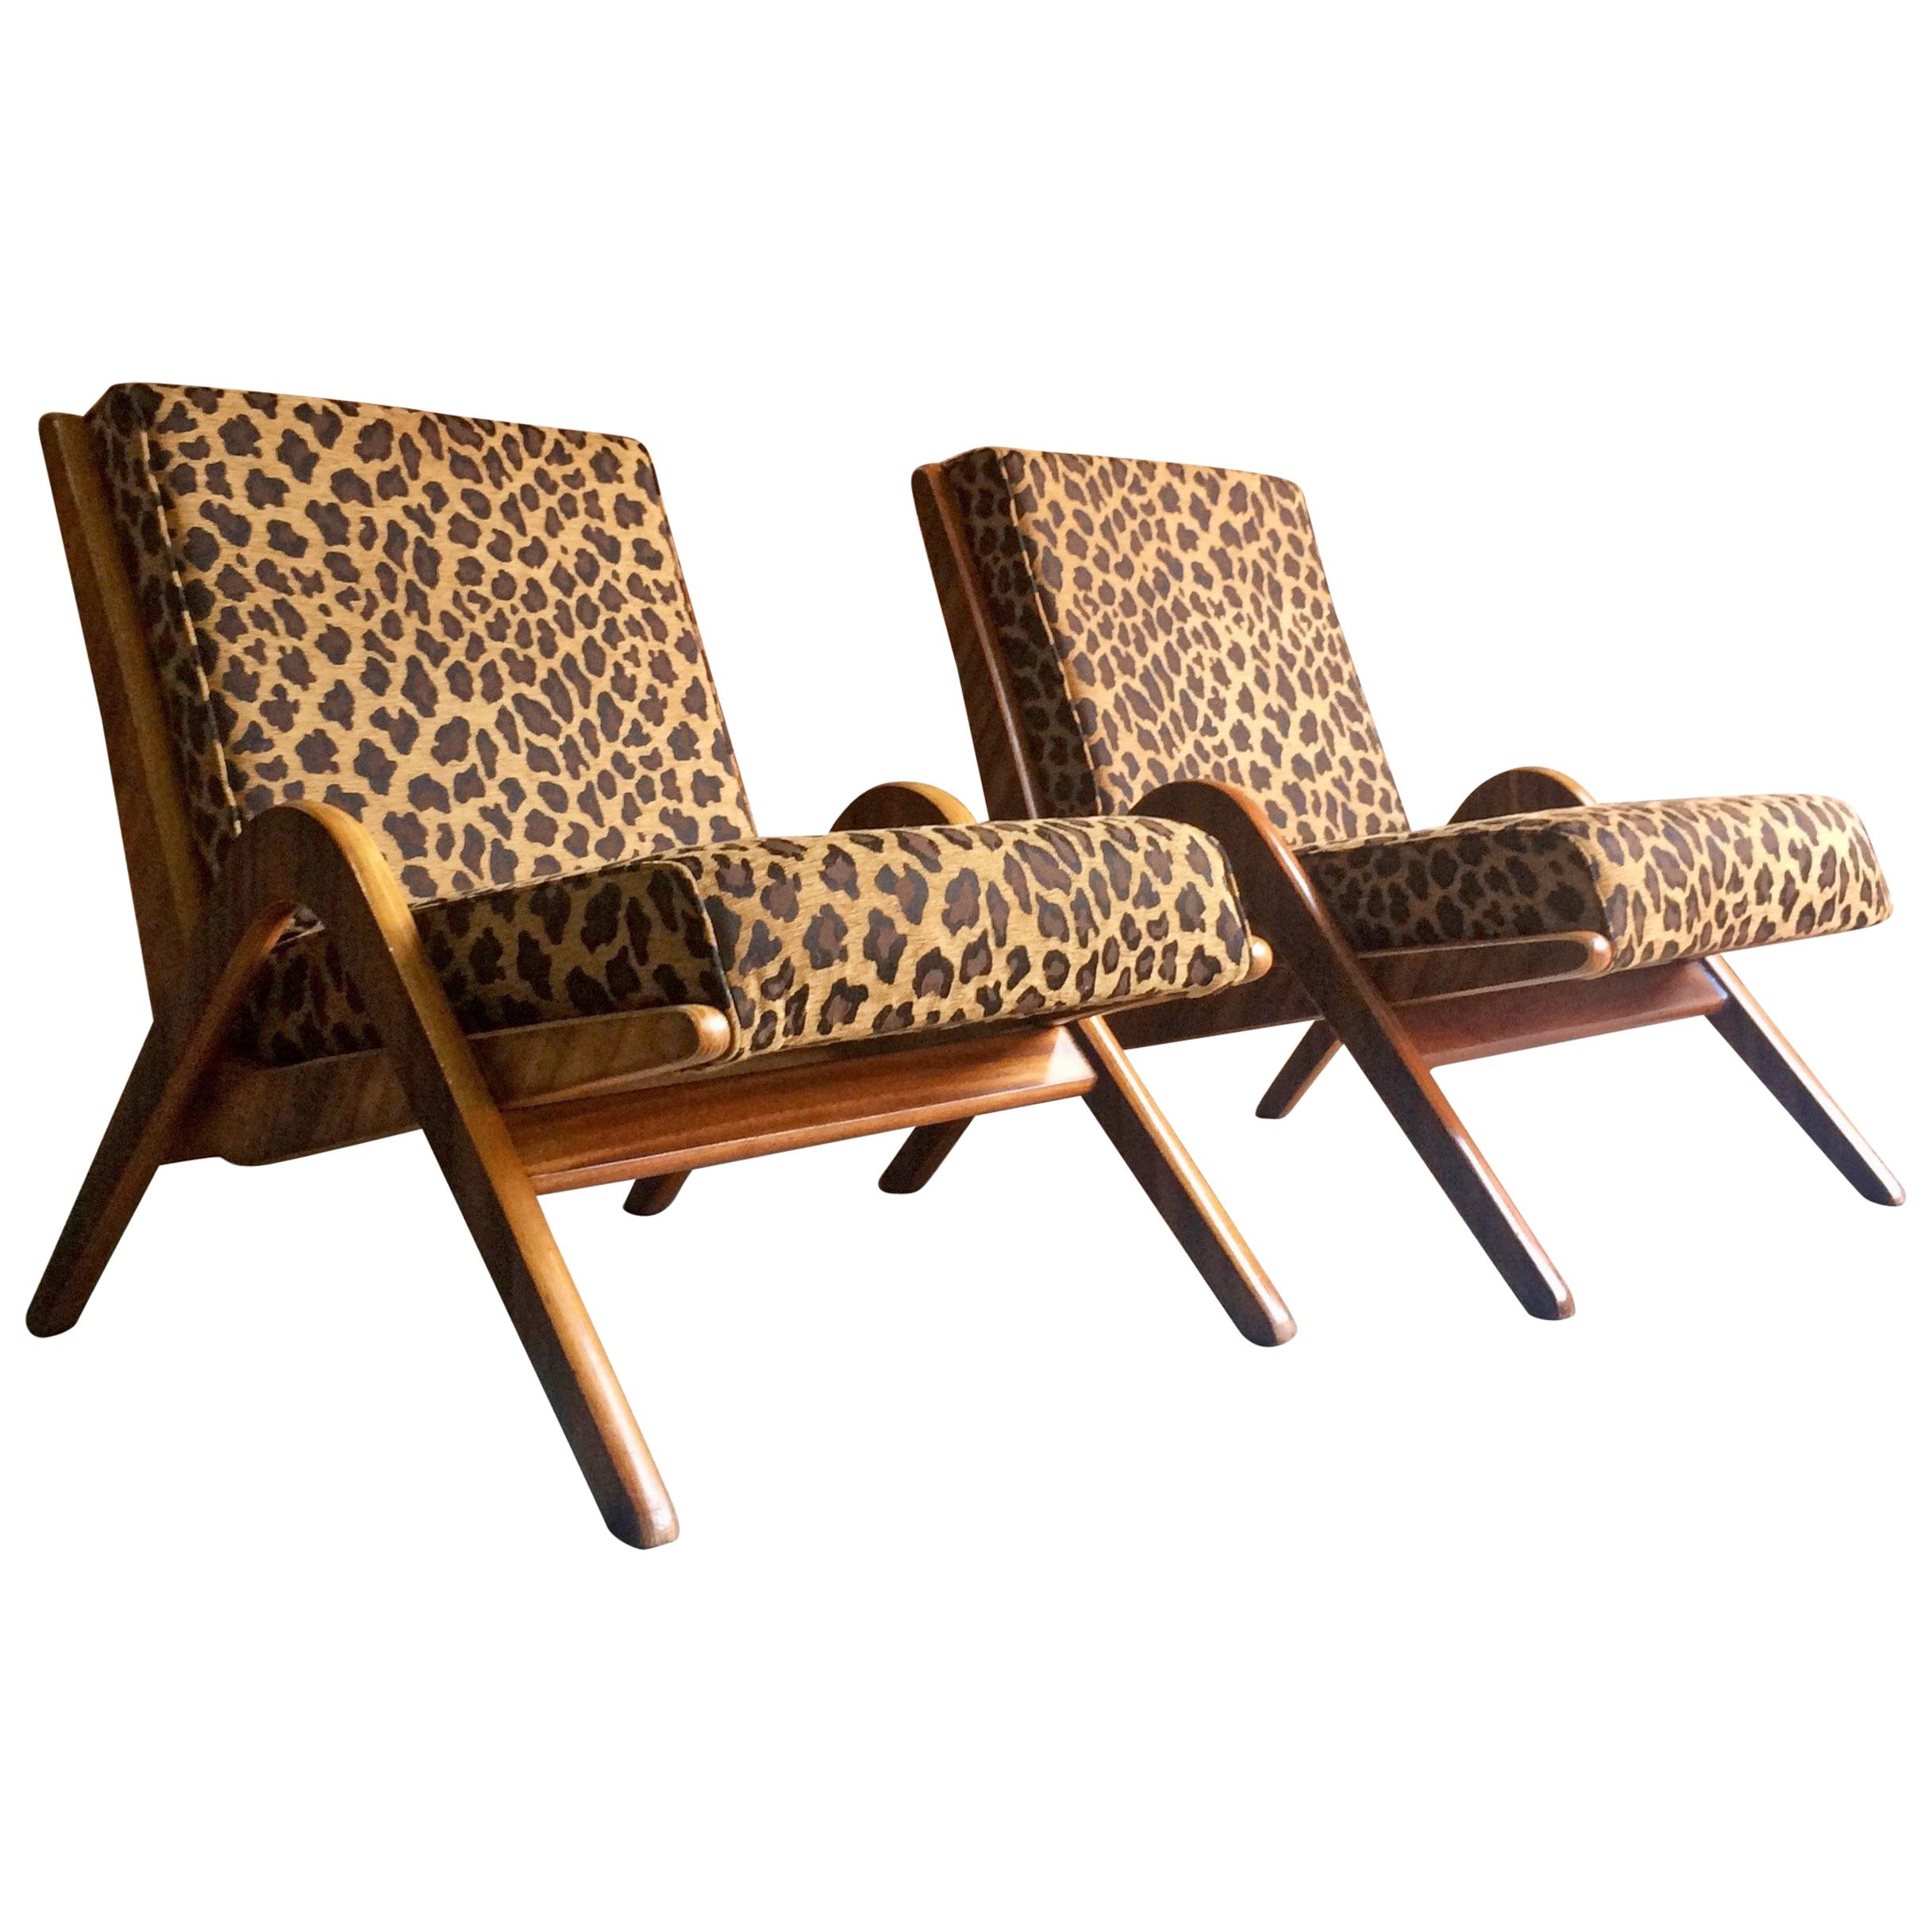 Midcentury Boomerang Chairs Pair By Neil Morris For Morris Of